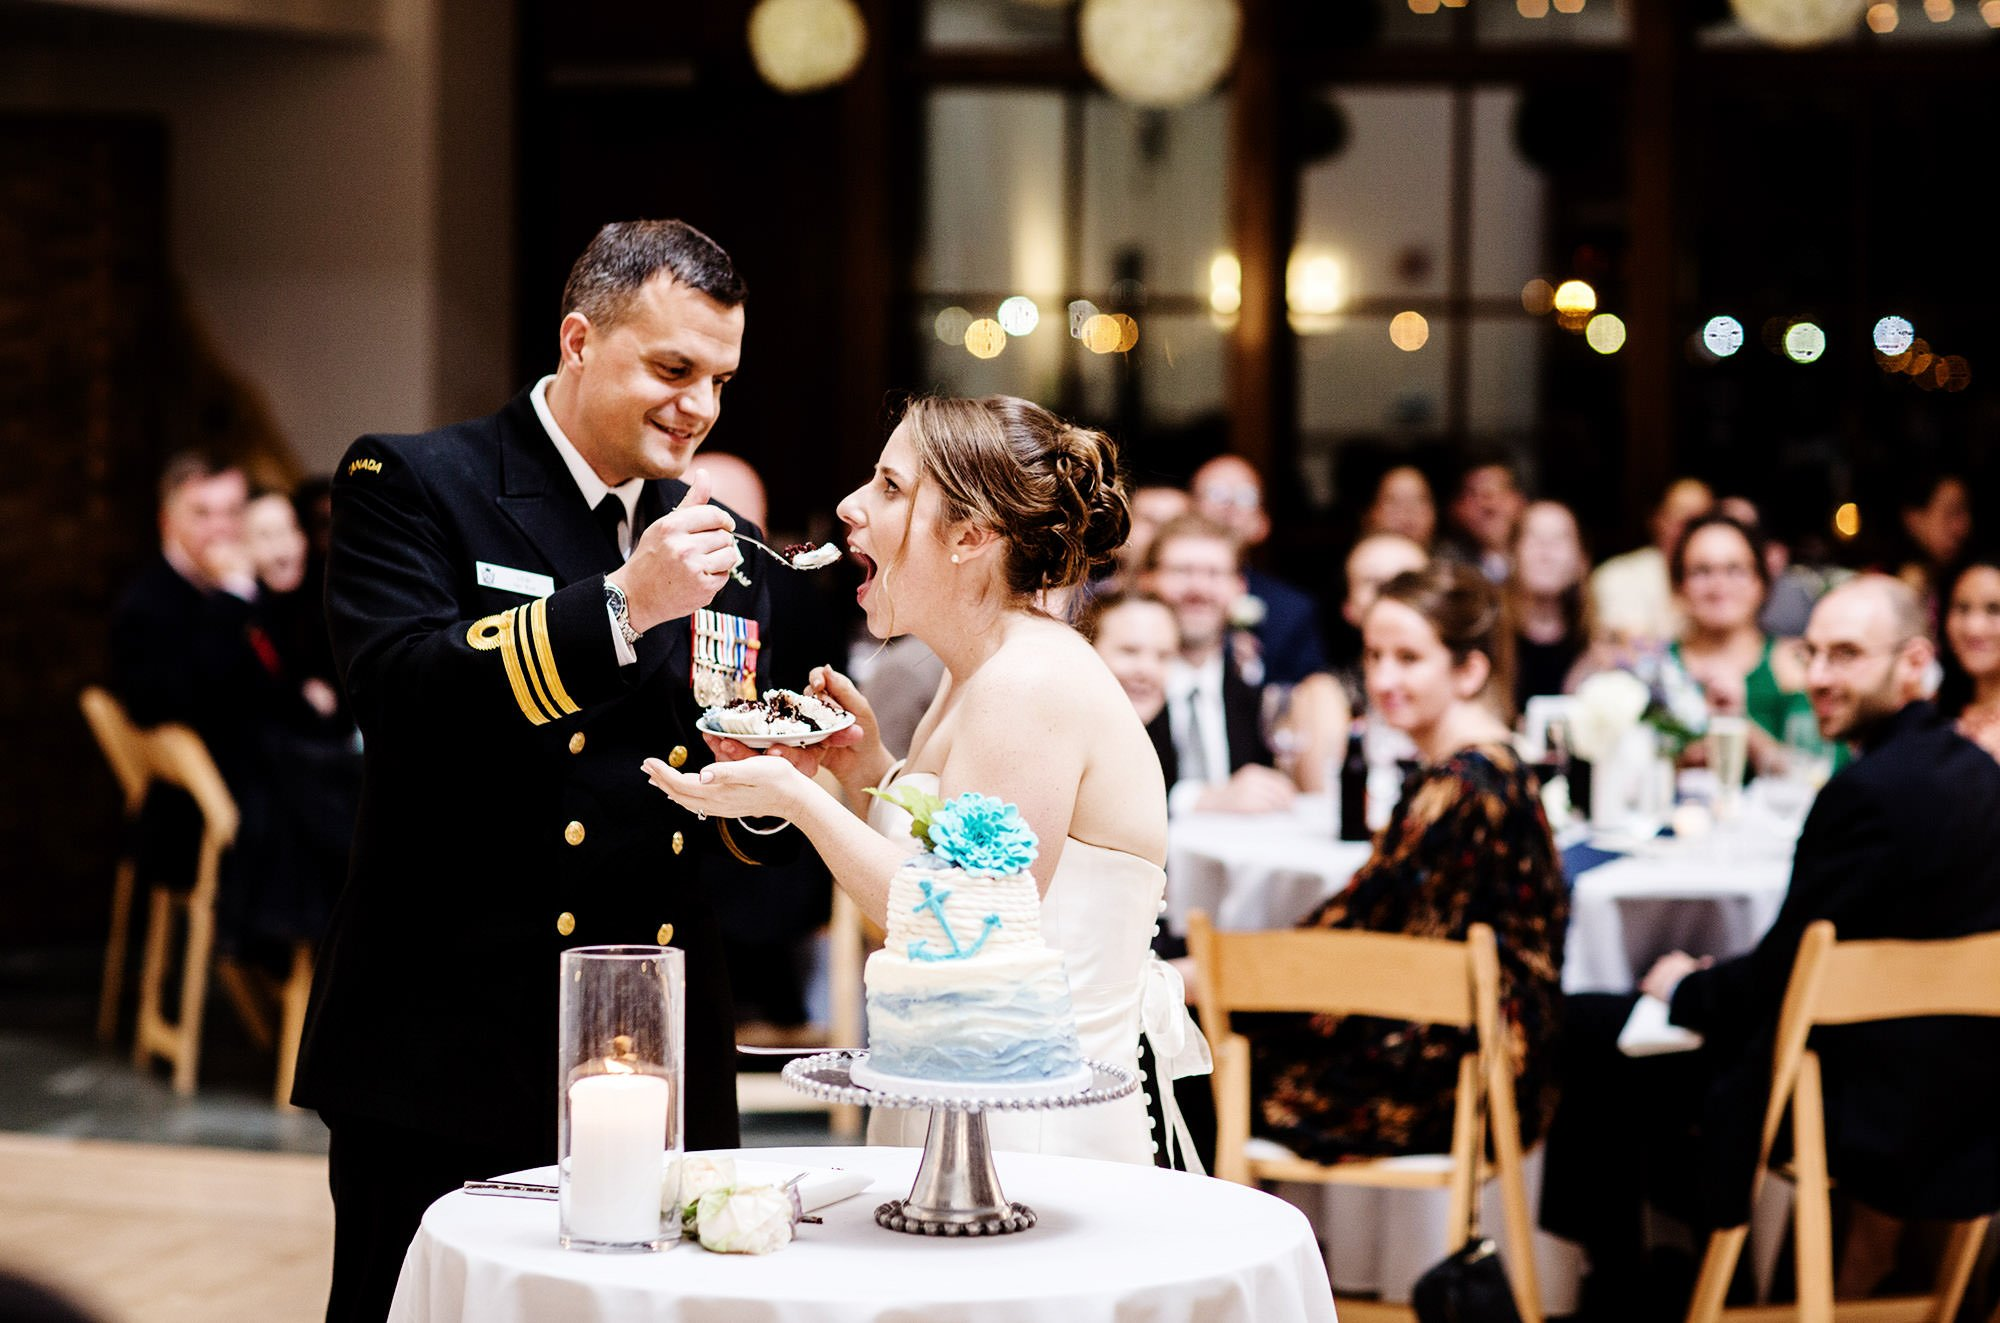 The bride and groom cut their wedding cake at Exchange Conference Center in Boston.